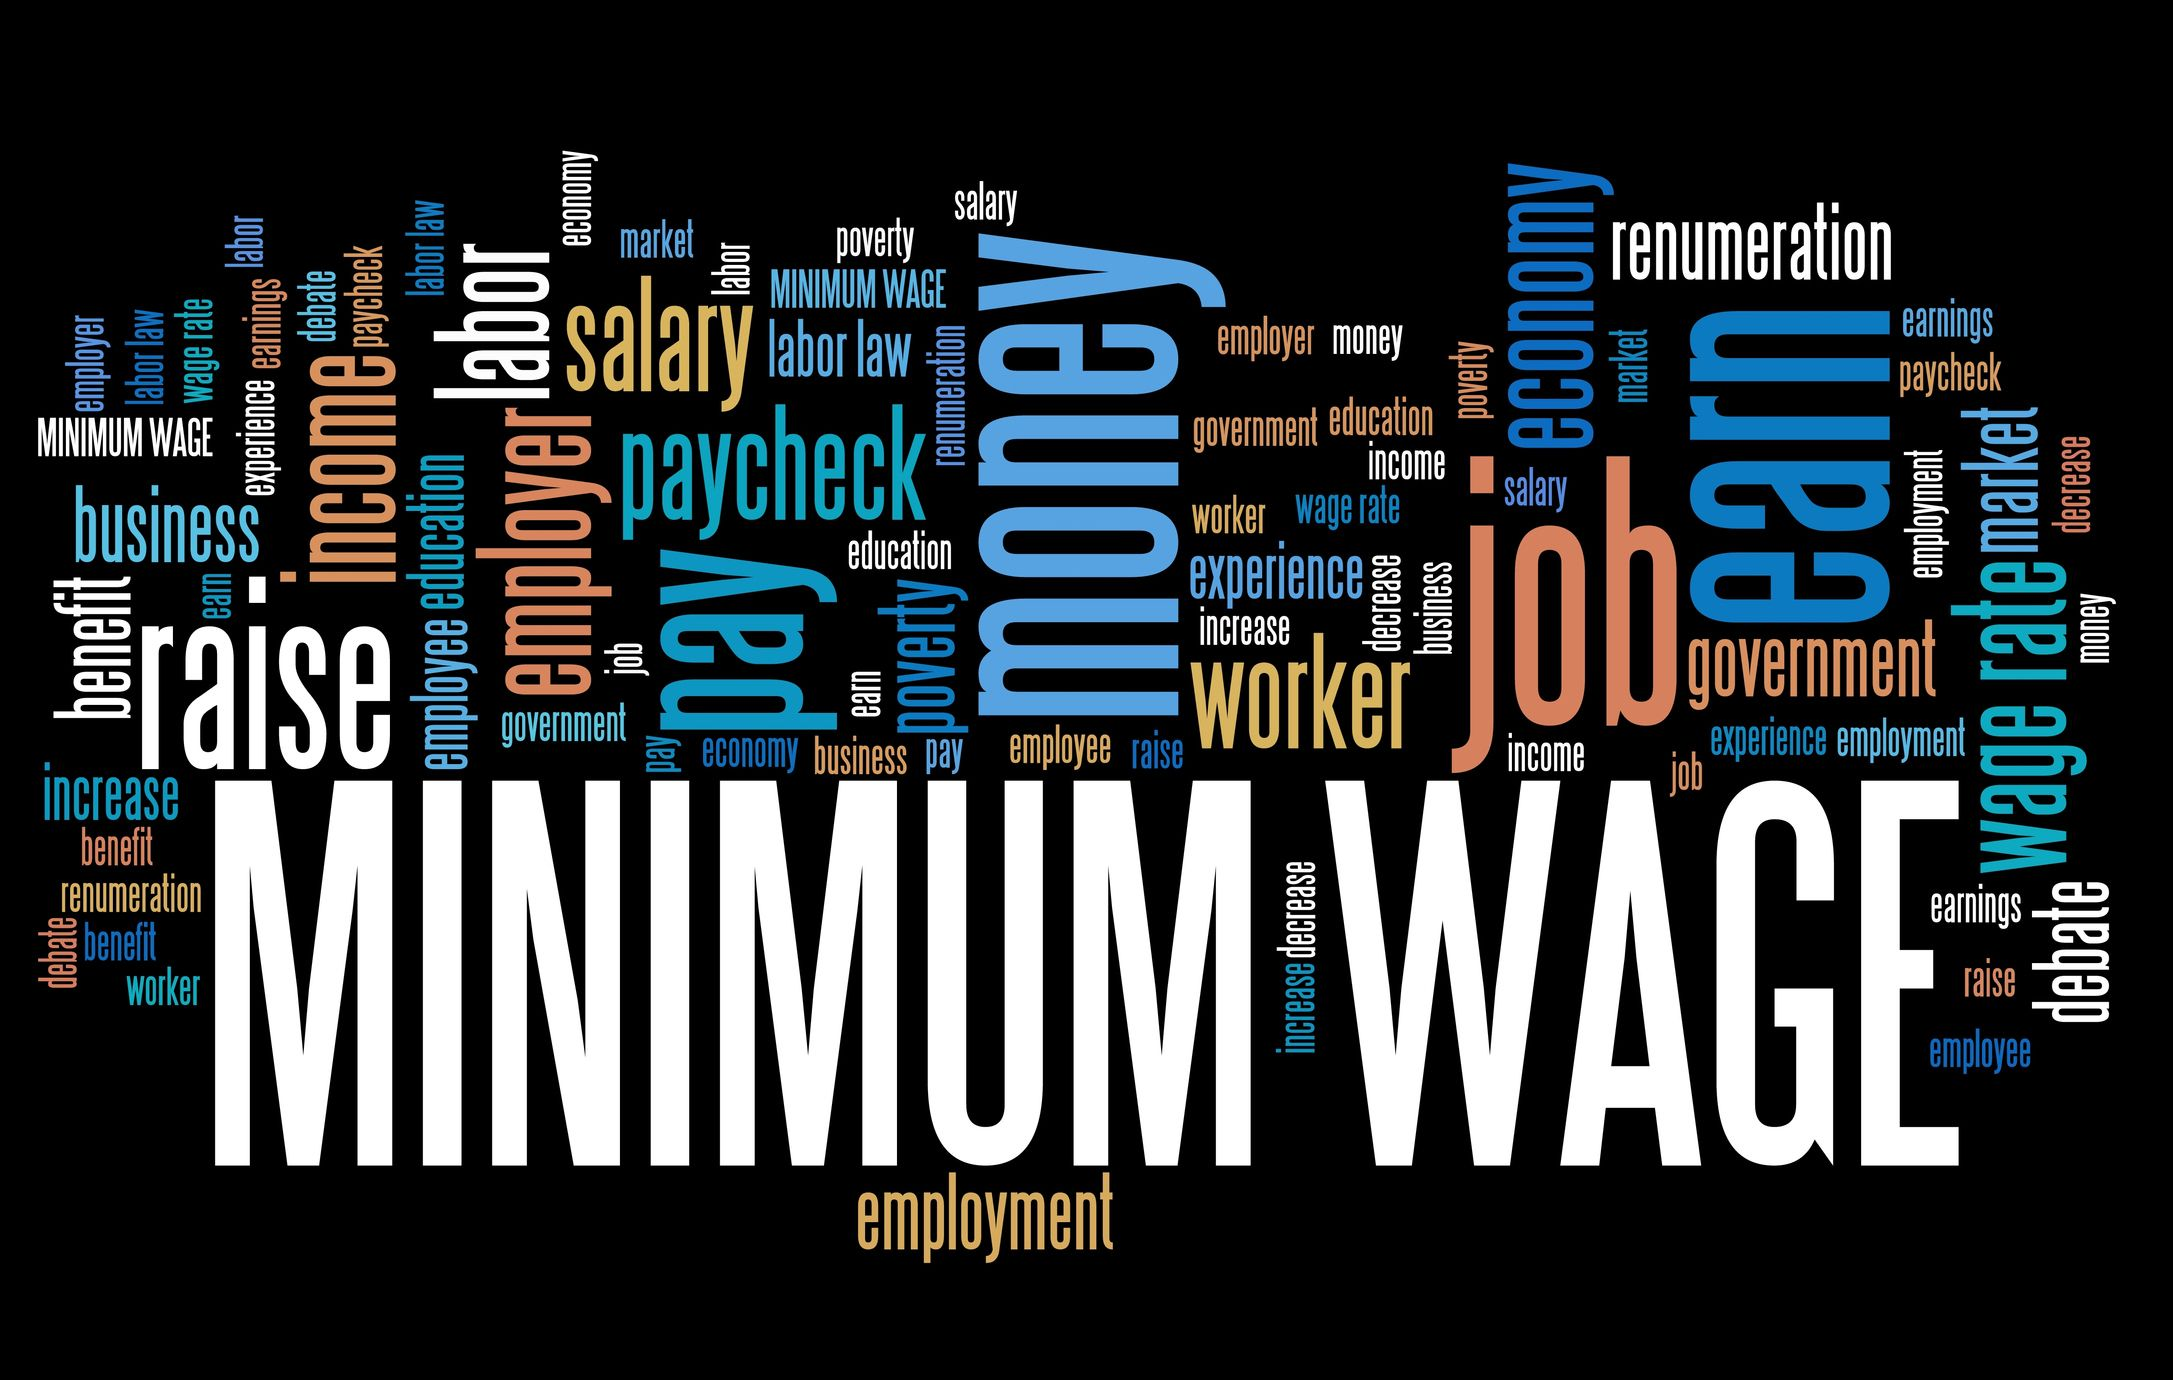 Ontarios-Minimum-Wage-and-Bill-148-What-You-Should-Know-compressor.jpg